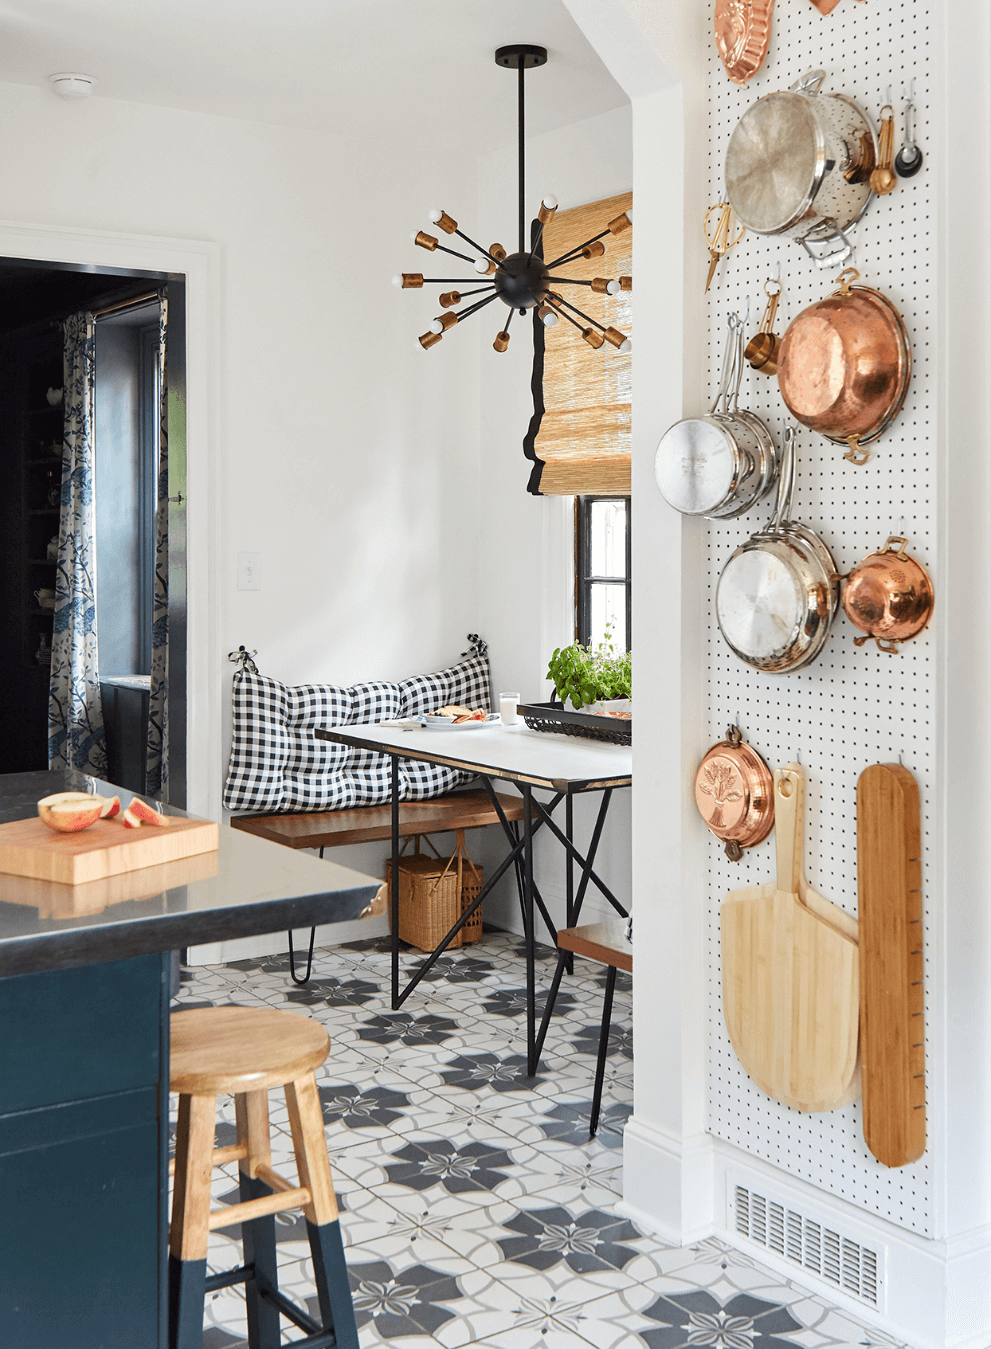 Small mid-century modern kitchen with a pegboard wall for a creative way to store your cooking essentials.